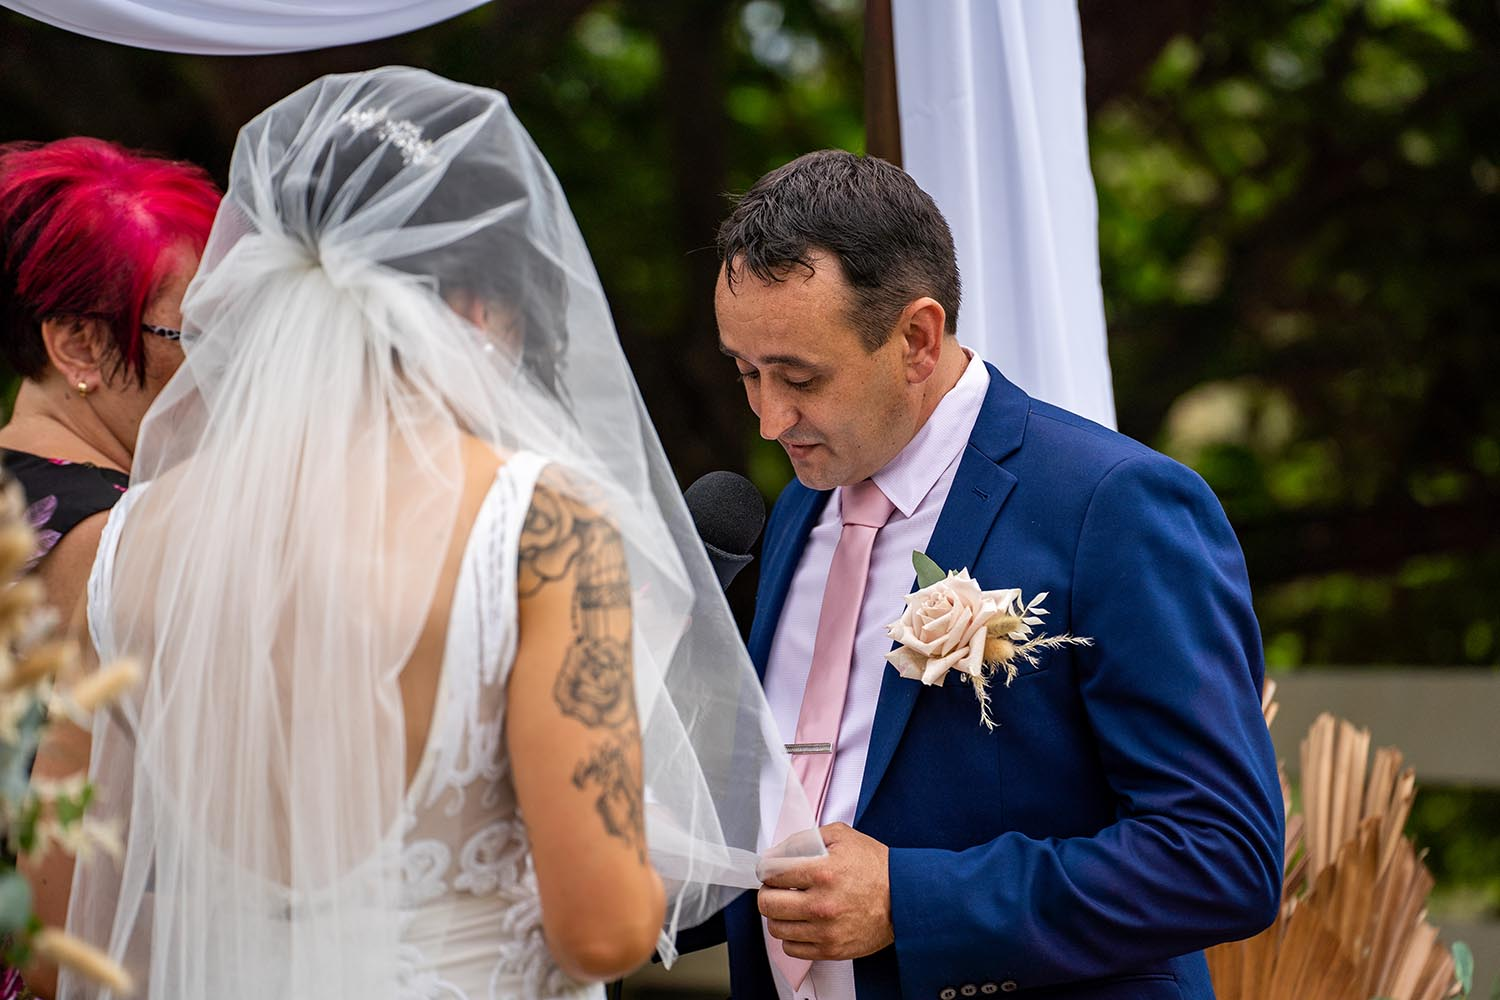 Wedding Photography - Reading Vows